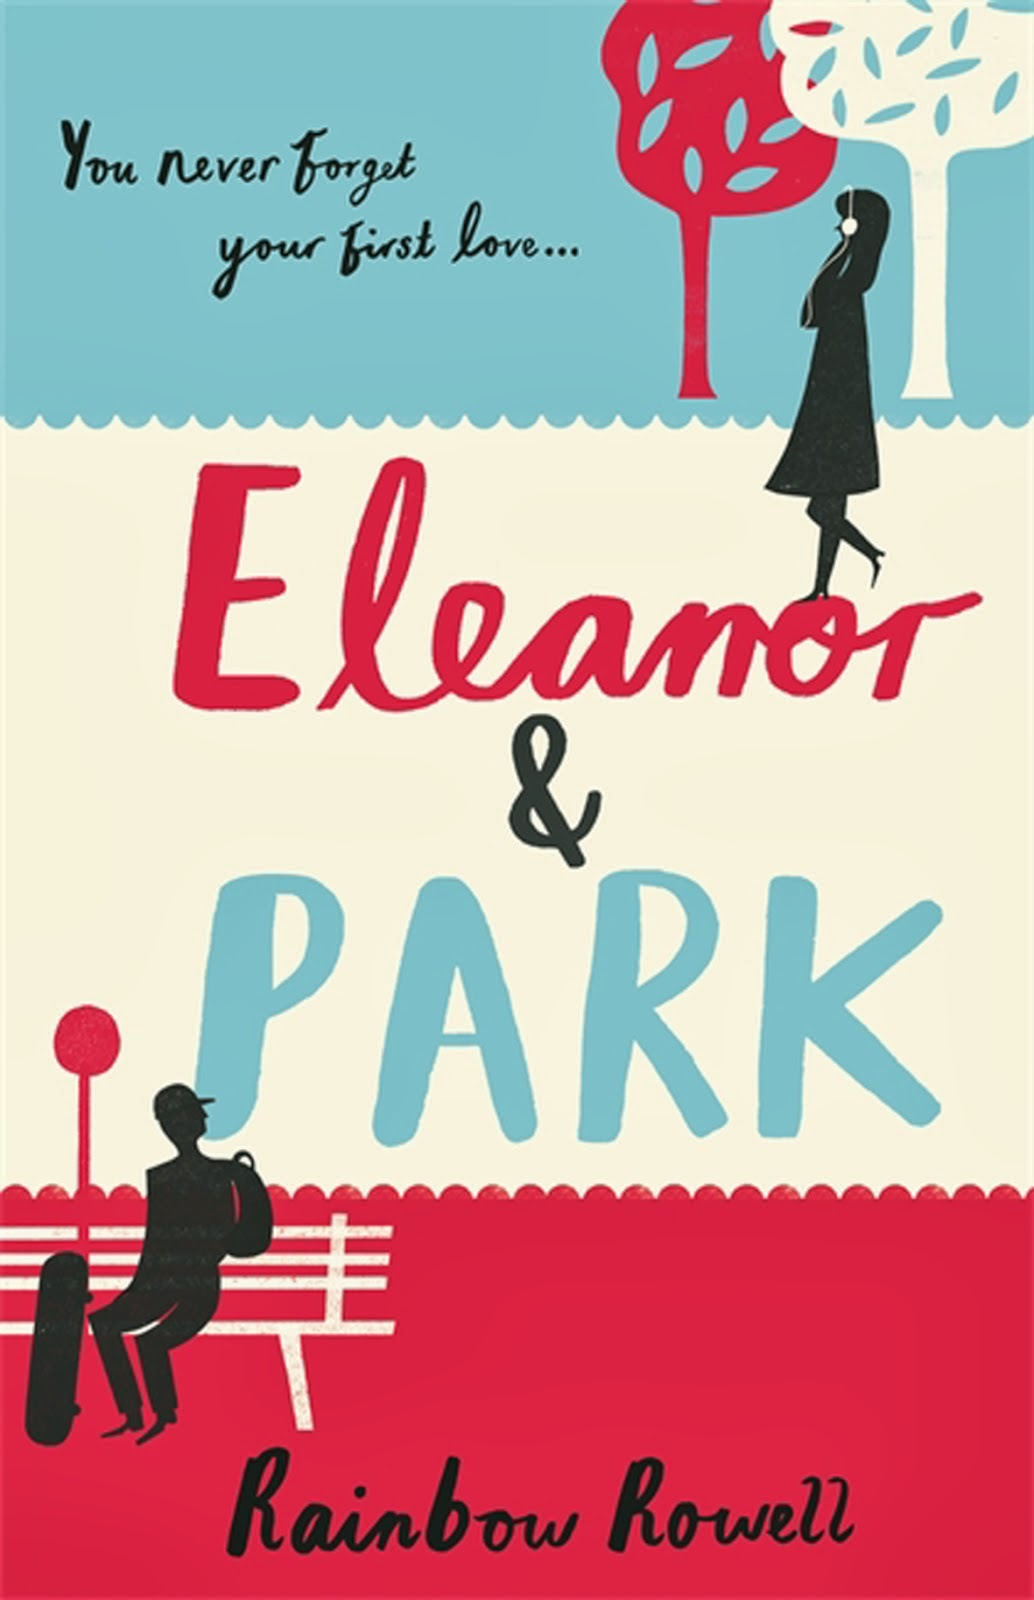 Book Cover School Uk ~ Portrait of a woman eleanor park rainbow rowell